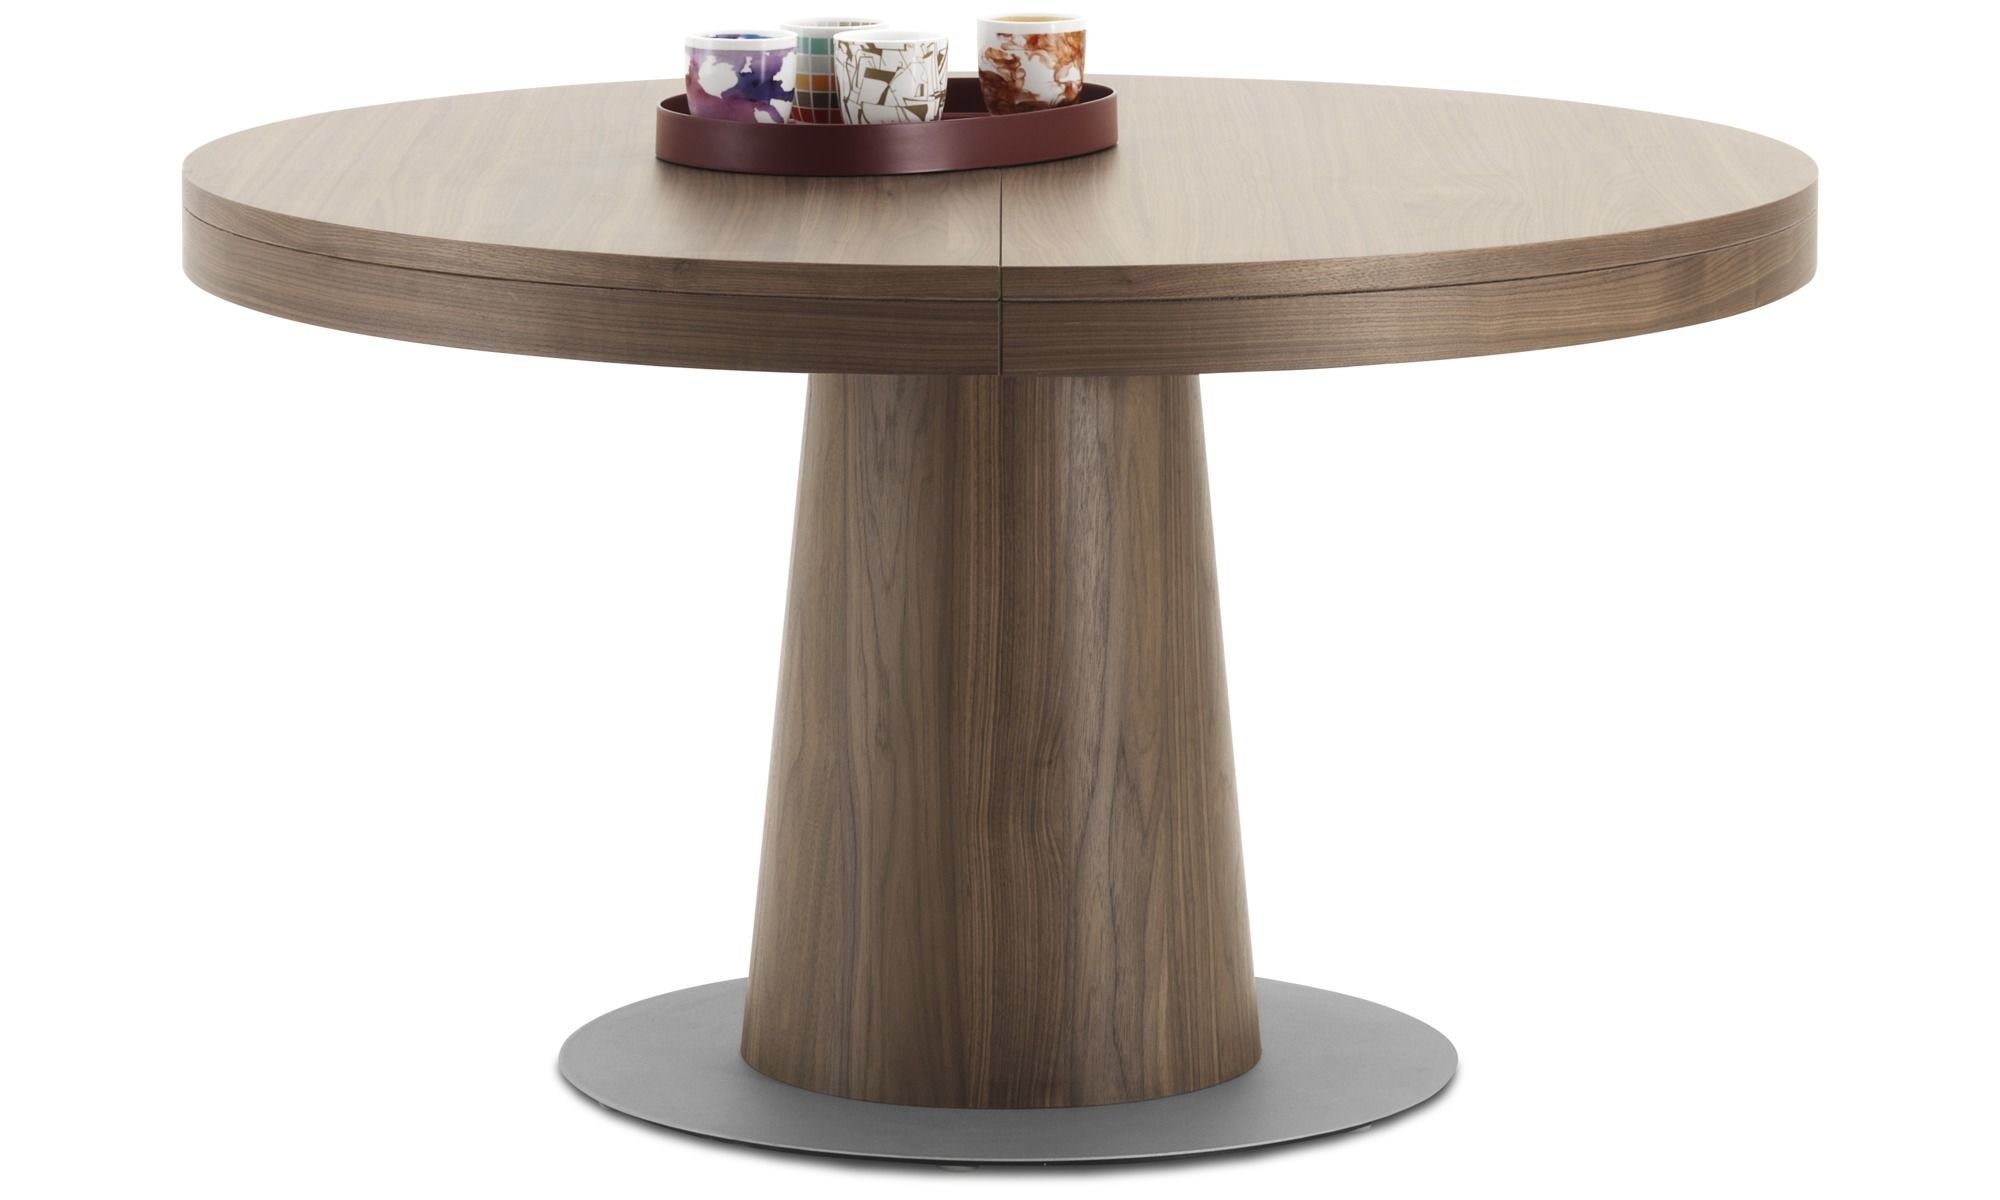 Granada Table With Supplementary Tabletop Round Extendable Dining Table Extendable Dining Table Modern Extendable Dining Table